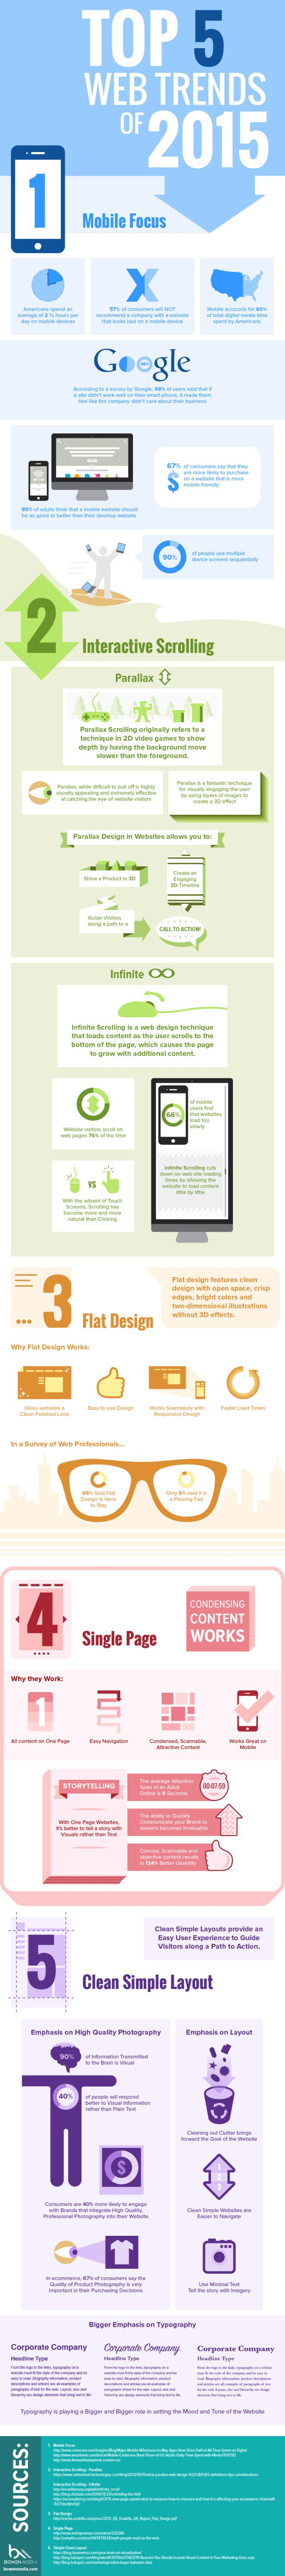 [Infographic] Top 5 Web Design Trends For 2015